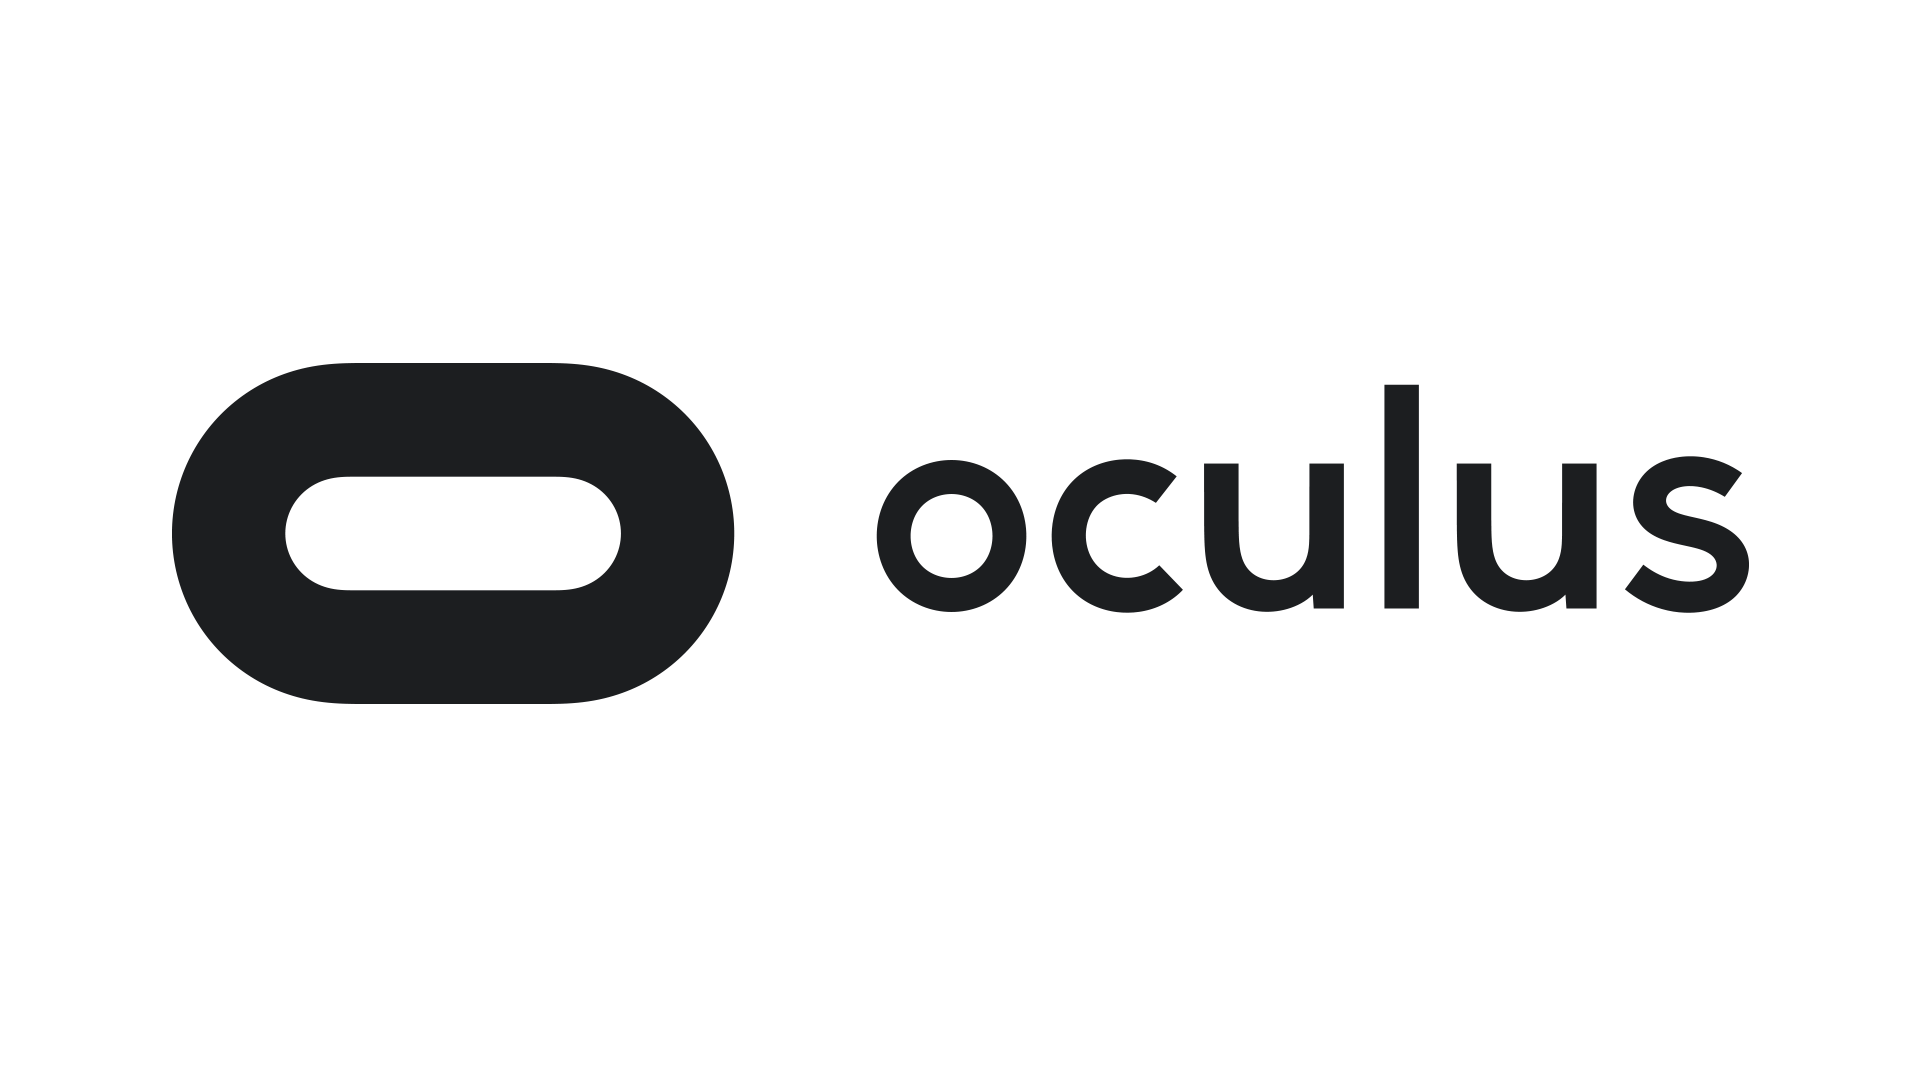 Oculus May Platform Update Adds Events For Rift Oculus This Week Launched Its May Platform Update Which Brings Ev Logo Design Trends Logo Design Vr Logo